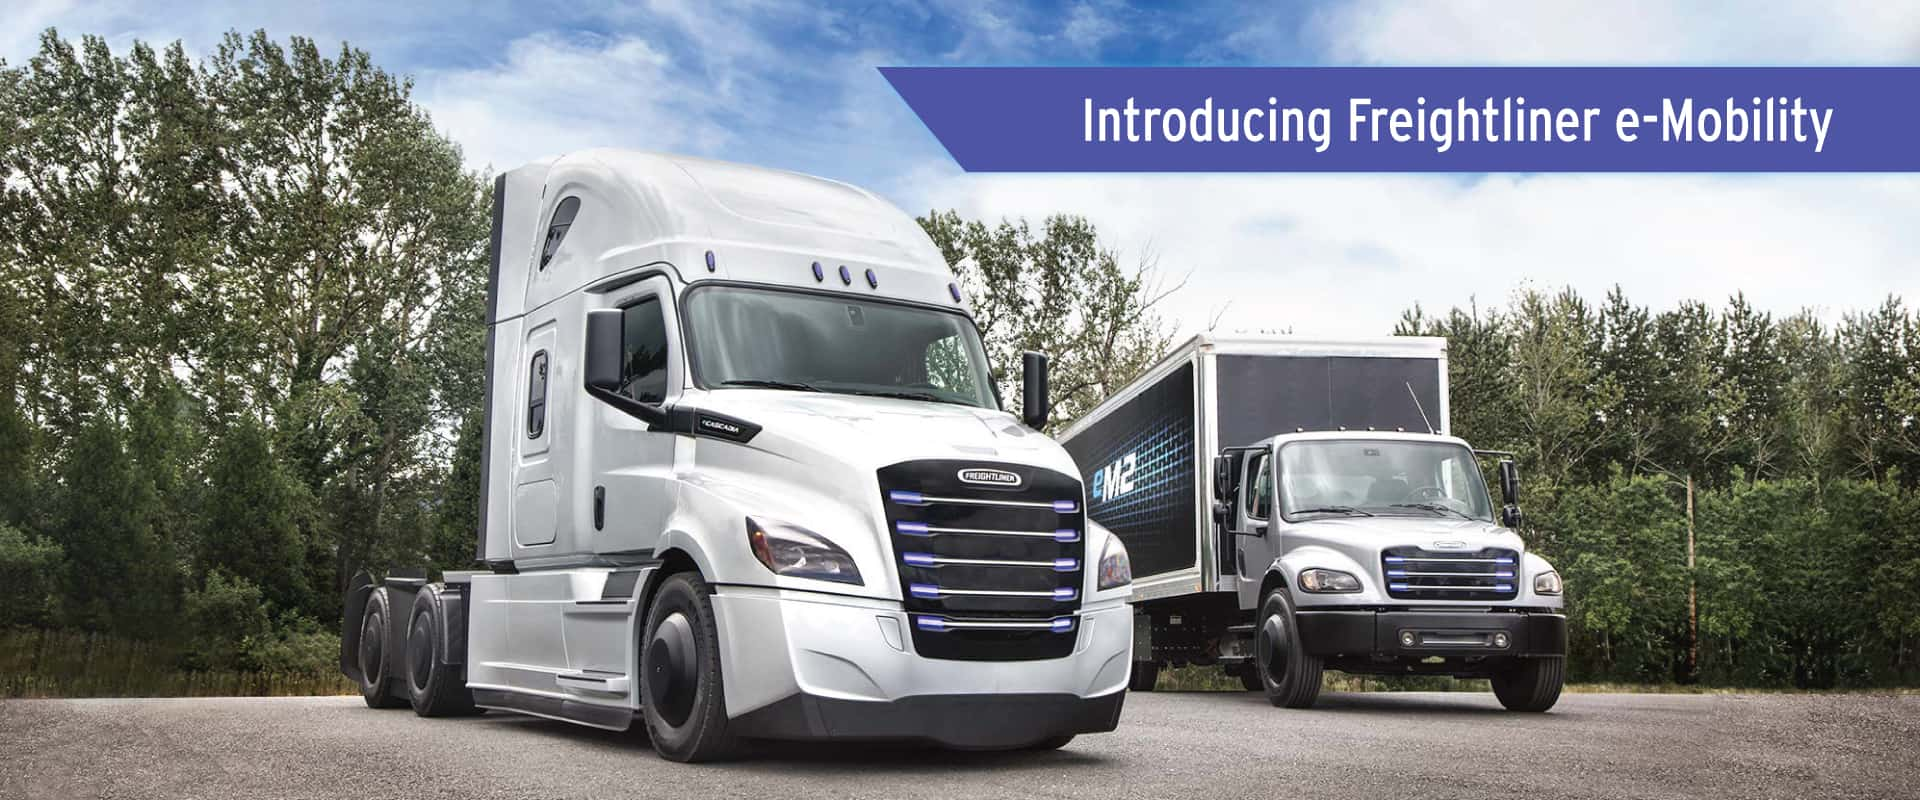 Introducing Freightliner e-Mobility